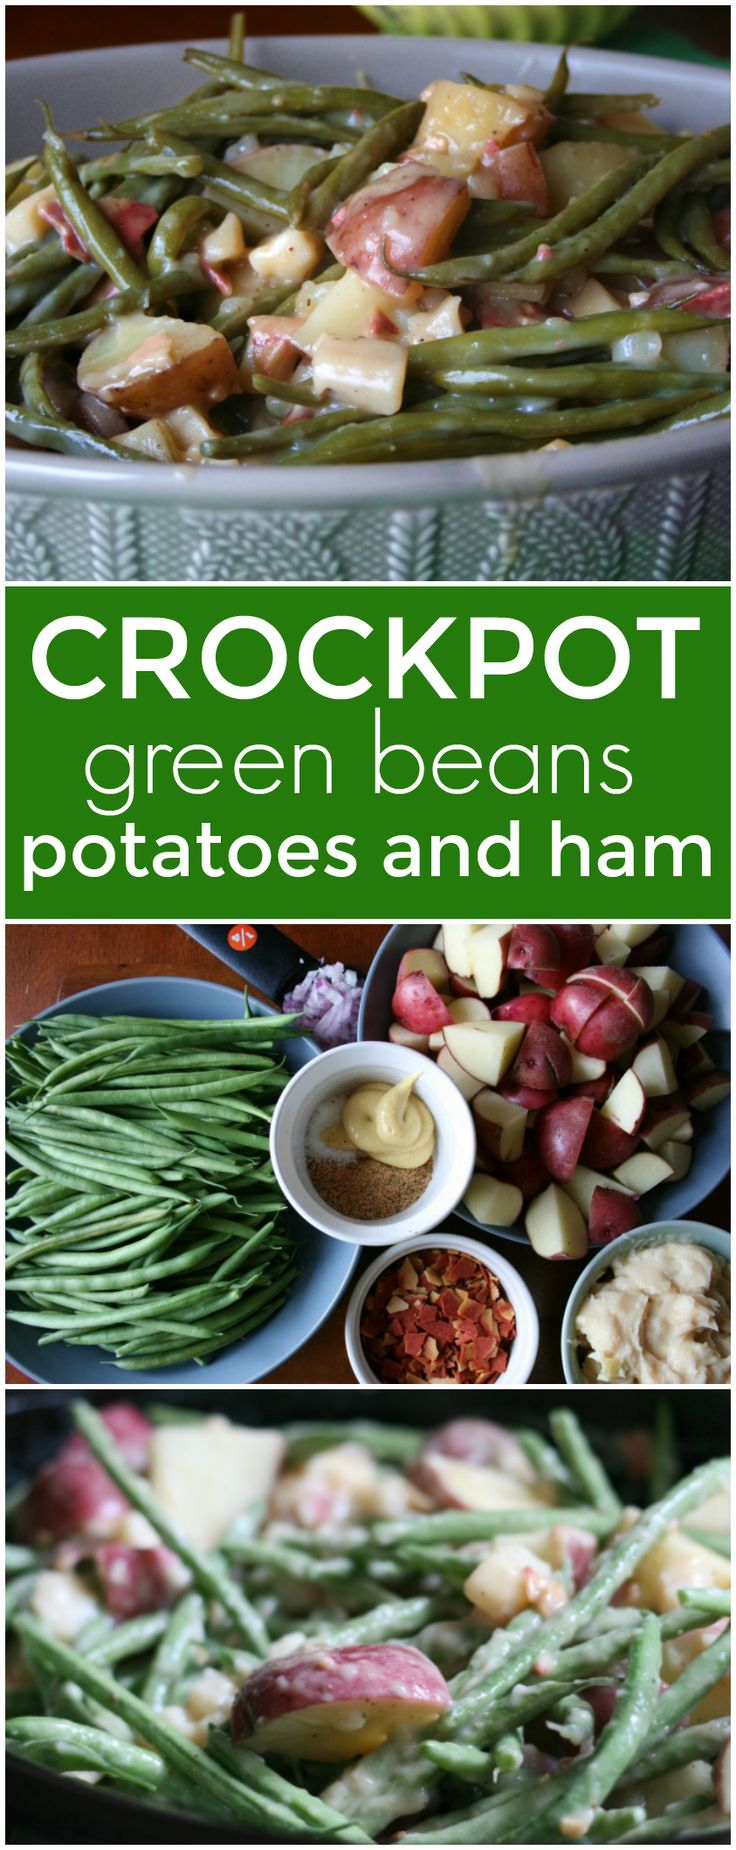 I decided to put a fun twist on this family favorite Crockpot Green Beans Potatoes and Ham. This quick and easy side is perfect for any family occasion.